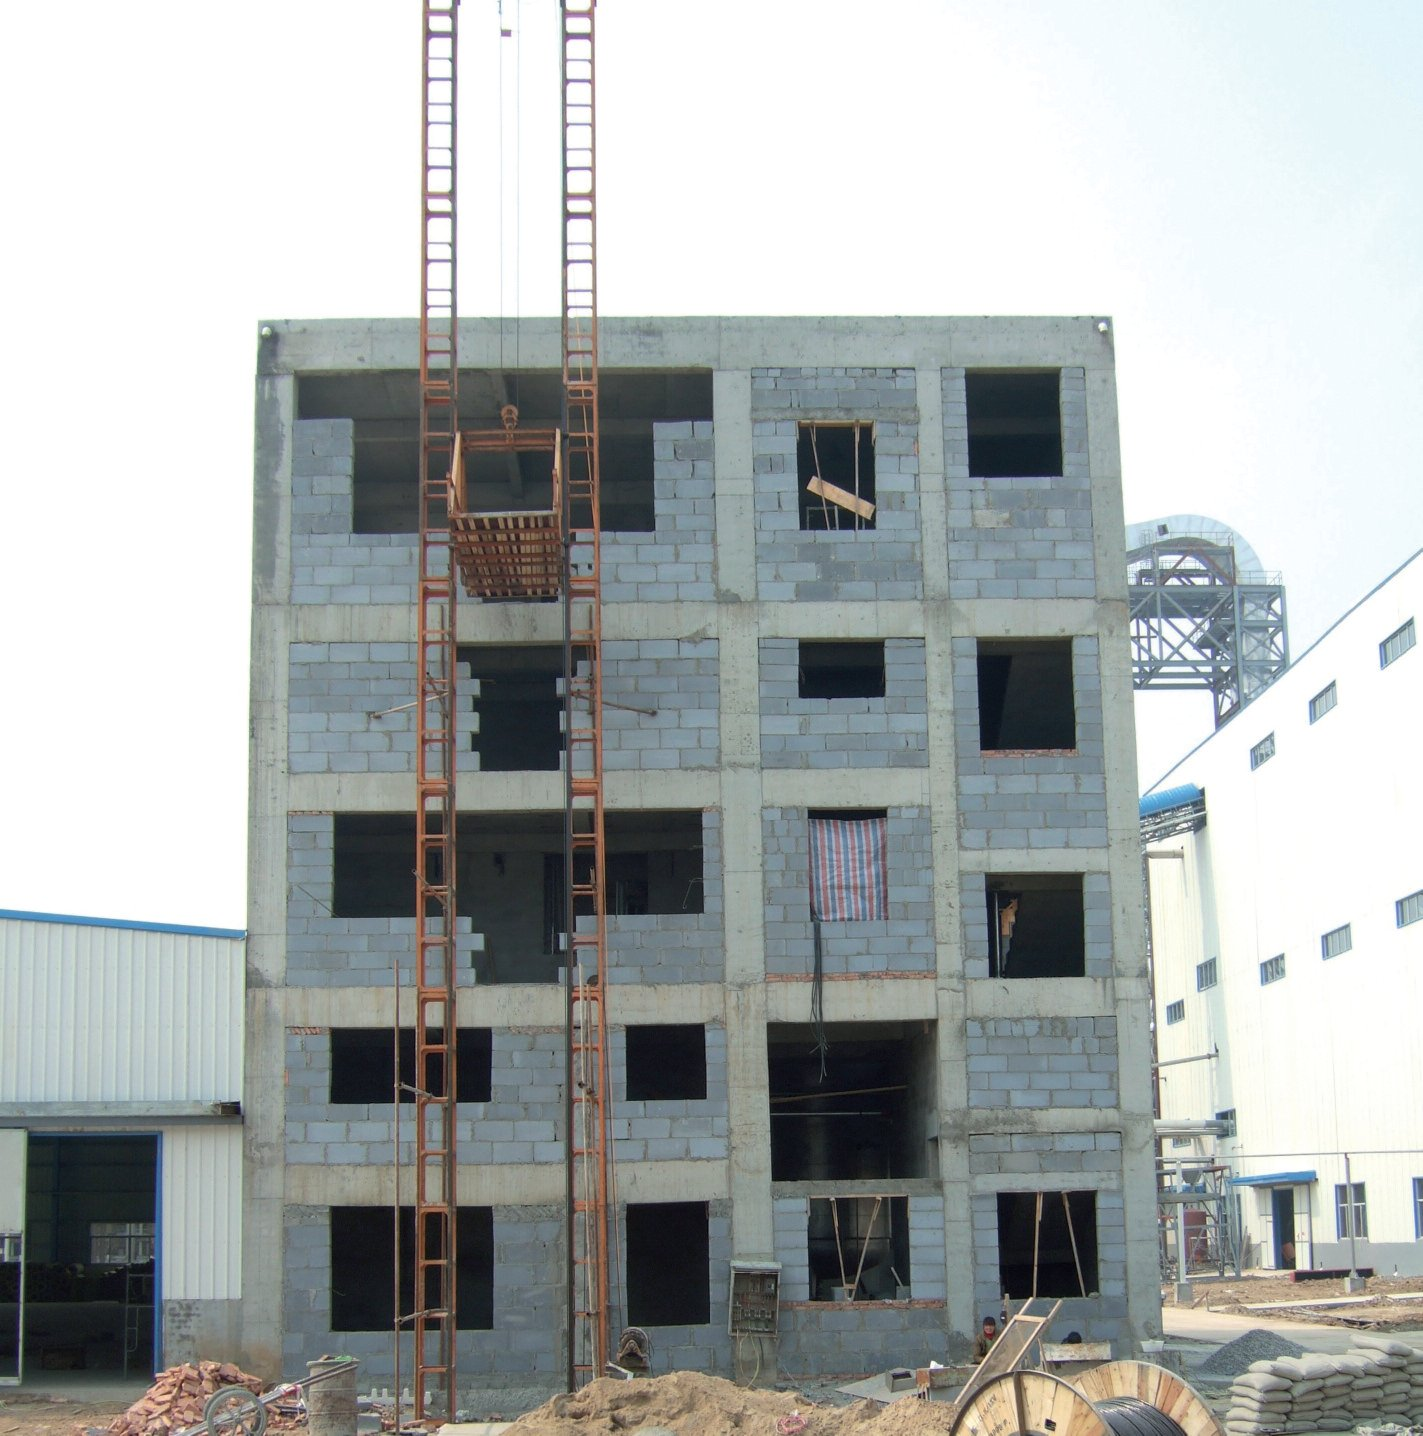 Building Under Construction : Resin production building under construction image